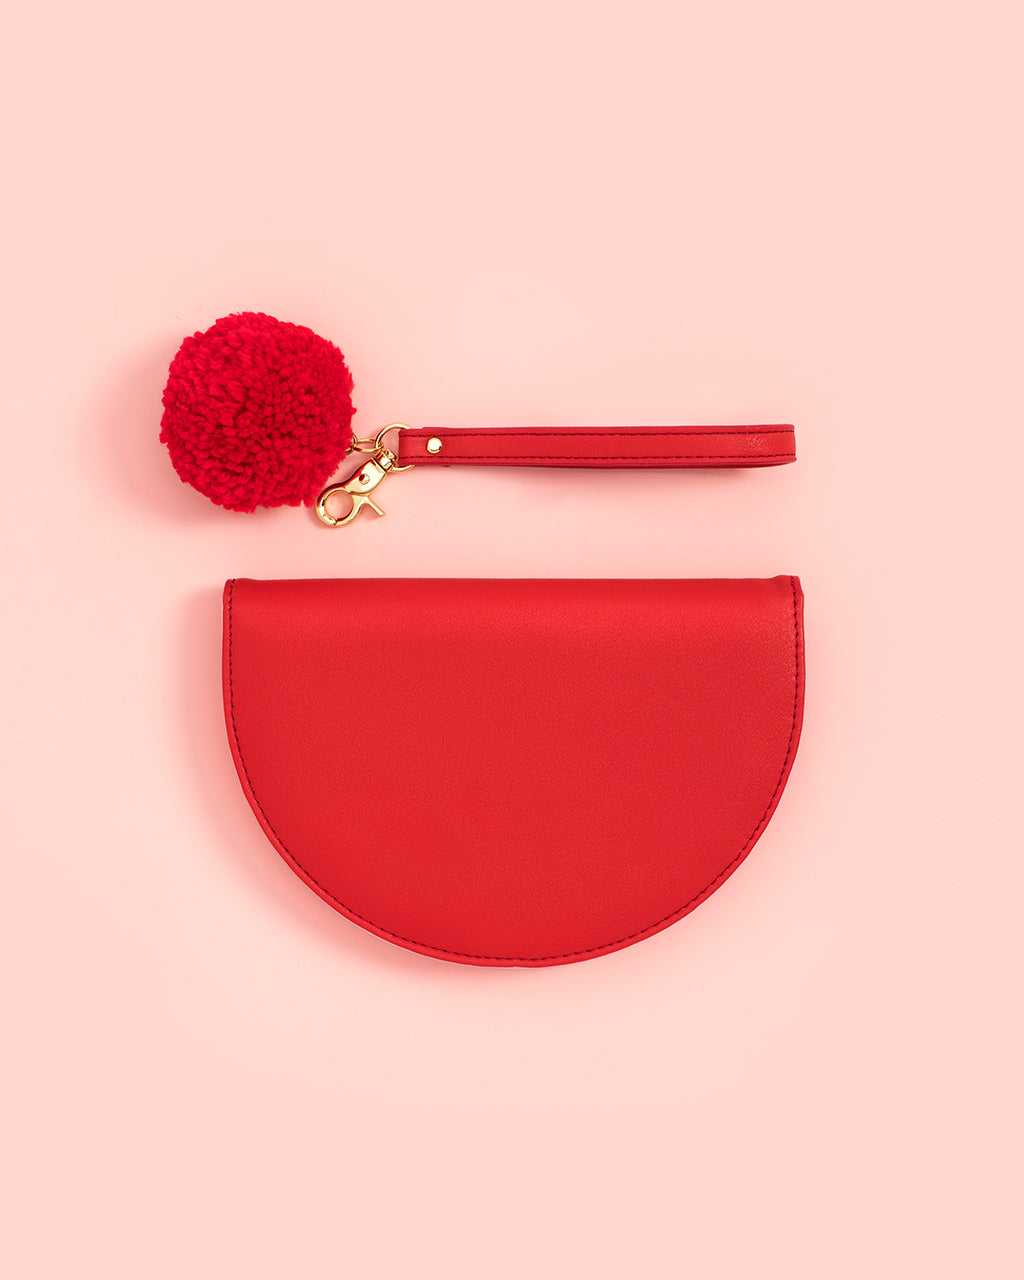 Removable wristlet keychain with synthetic wool pom pom attaches to metallic gold zipper pull.